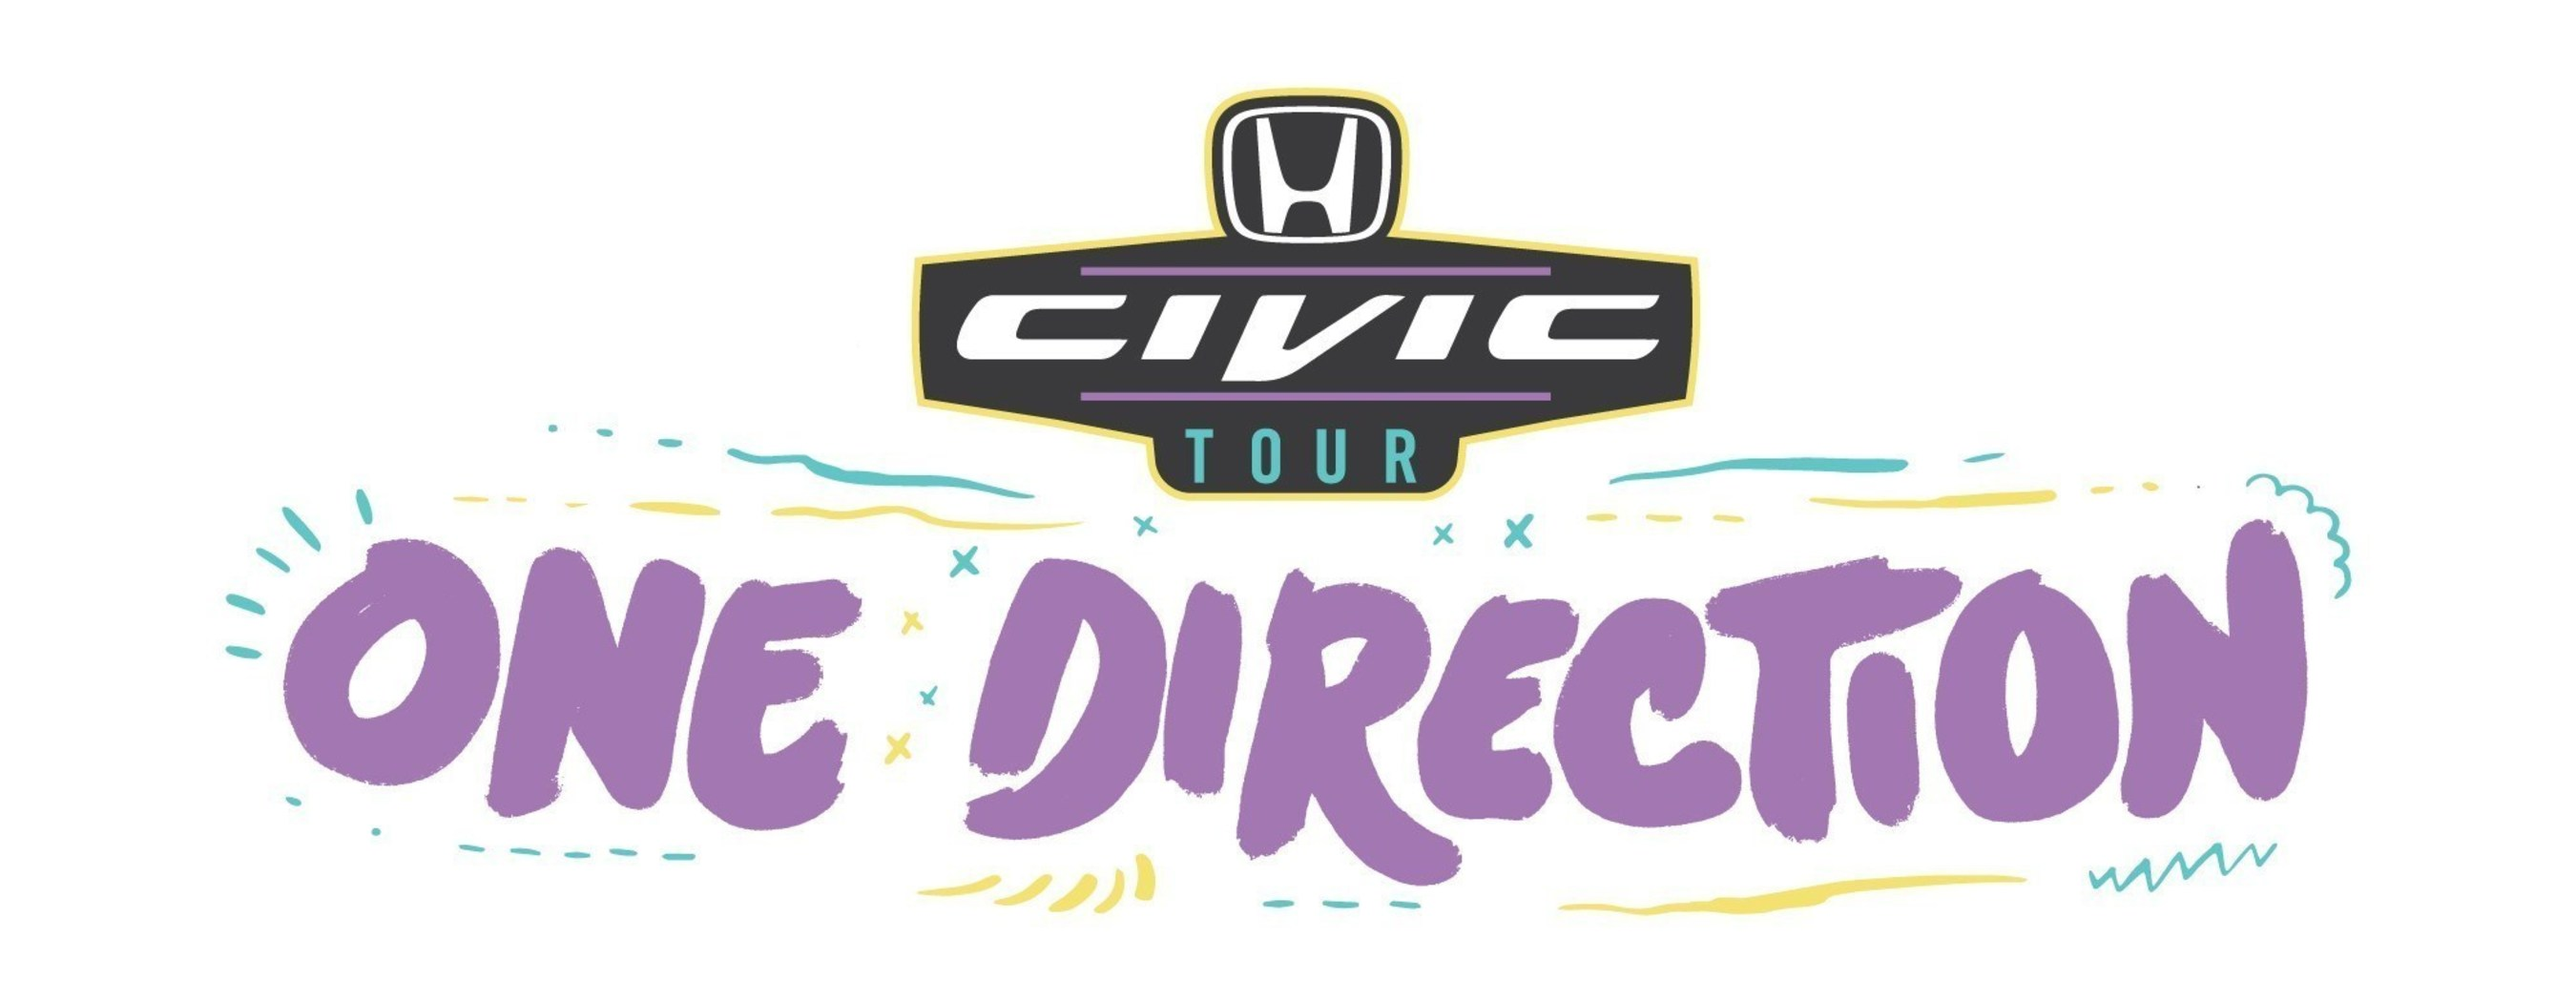 Honda Civic Tour Presents One Direction On The Road Again Kicks Off Today In San Diego, CA